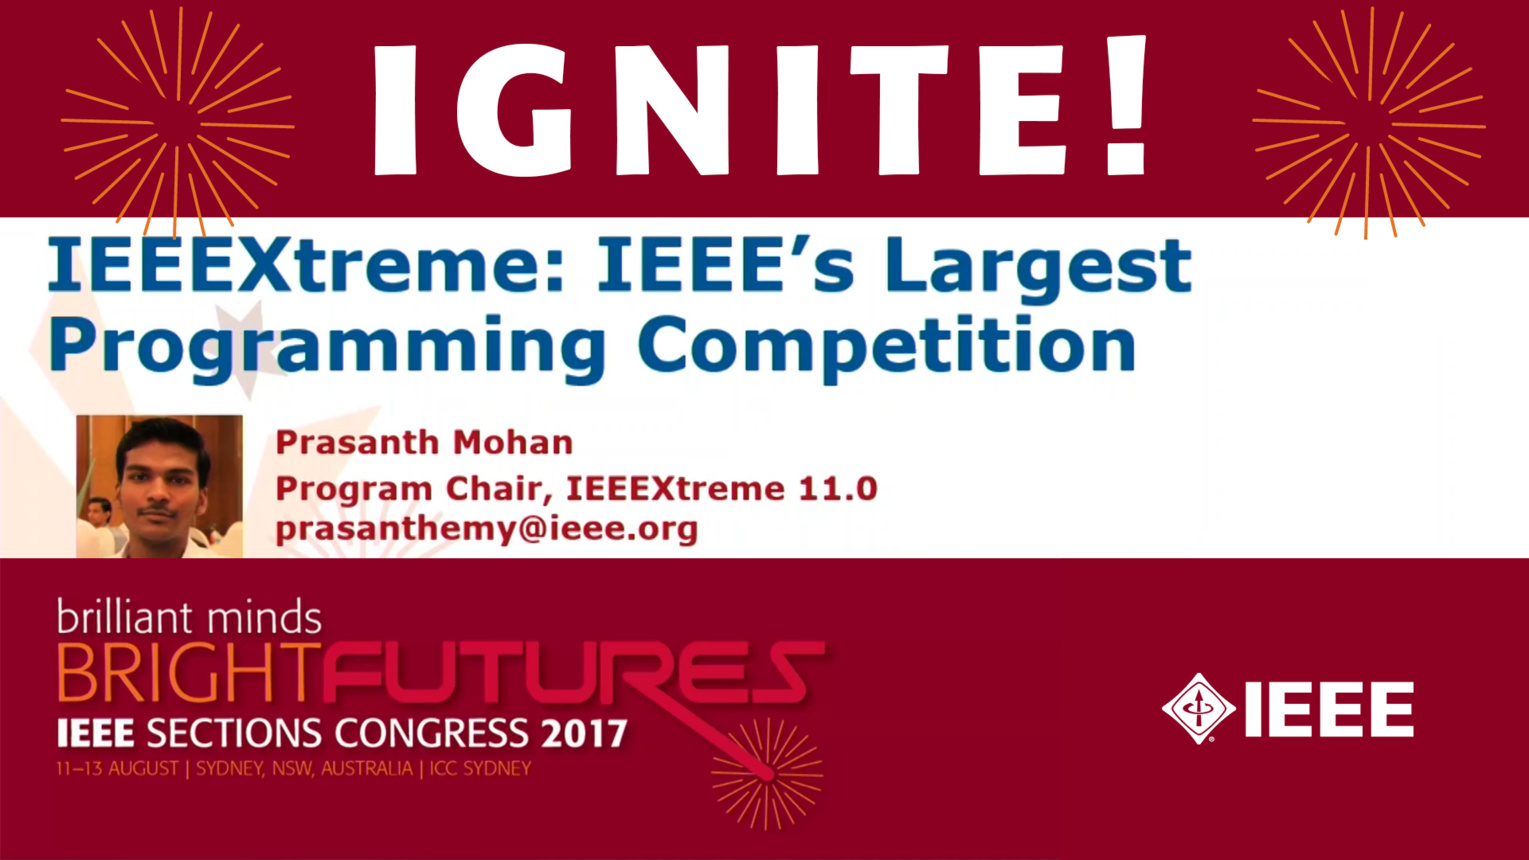 IEEEXtreme: IEEE's Largest Programming Competition - Prasanth Mohan - Ignite: Sections Congress 2017